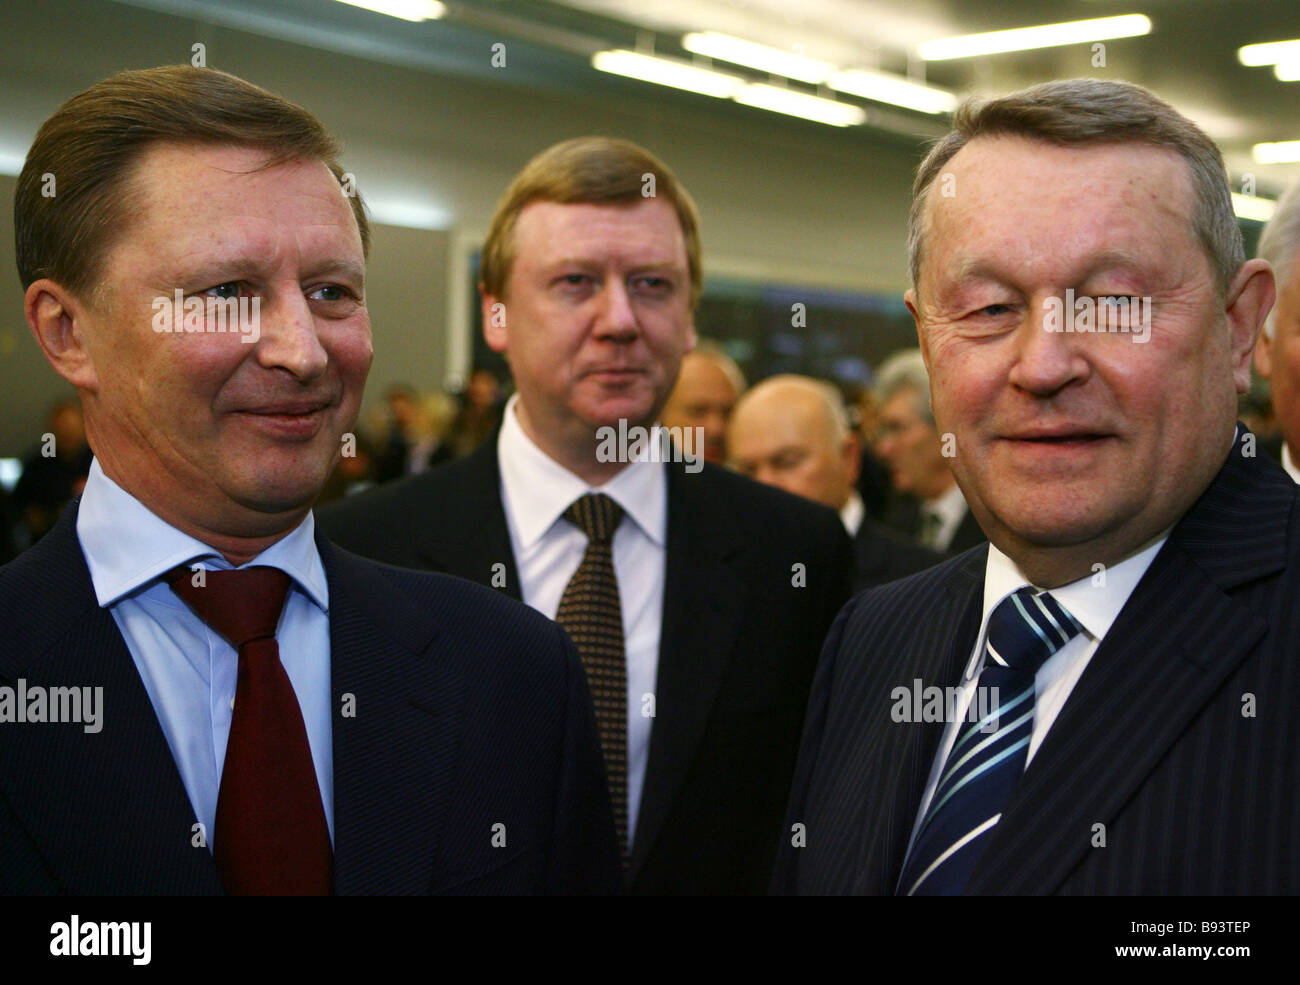 The first family photo of Chubais shocked everyone 24.01.2012 84